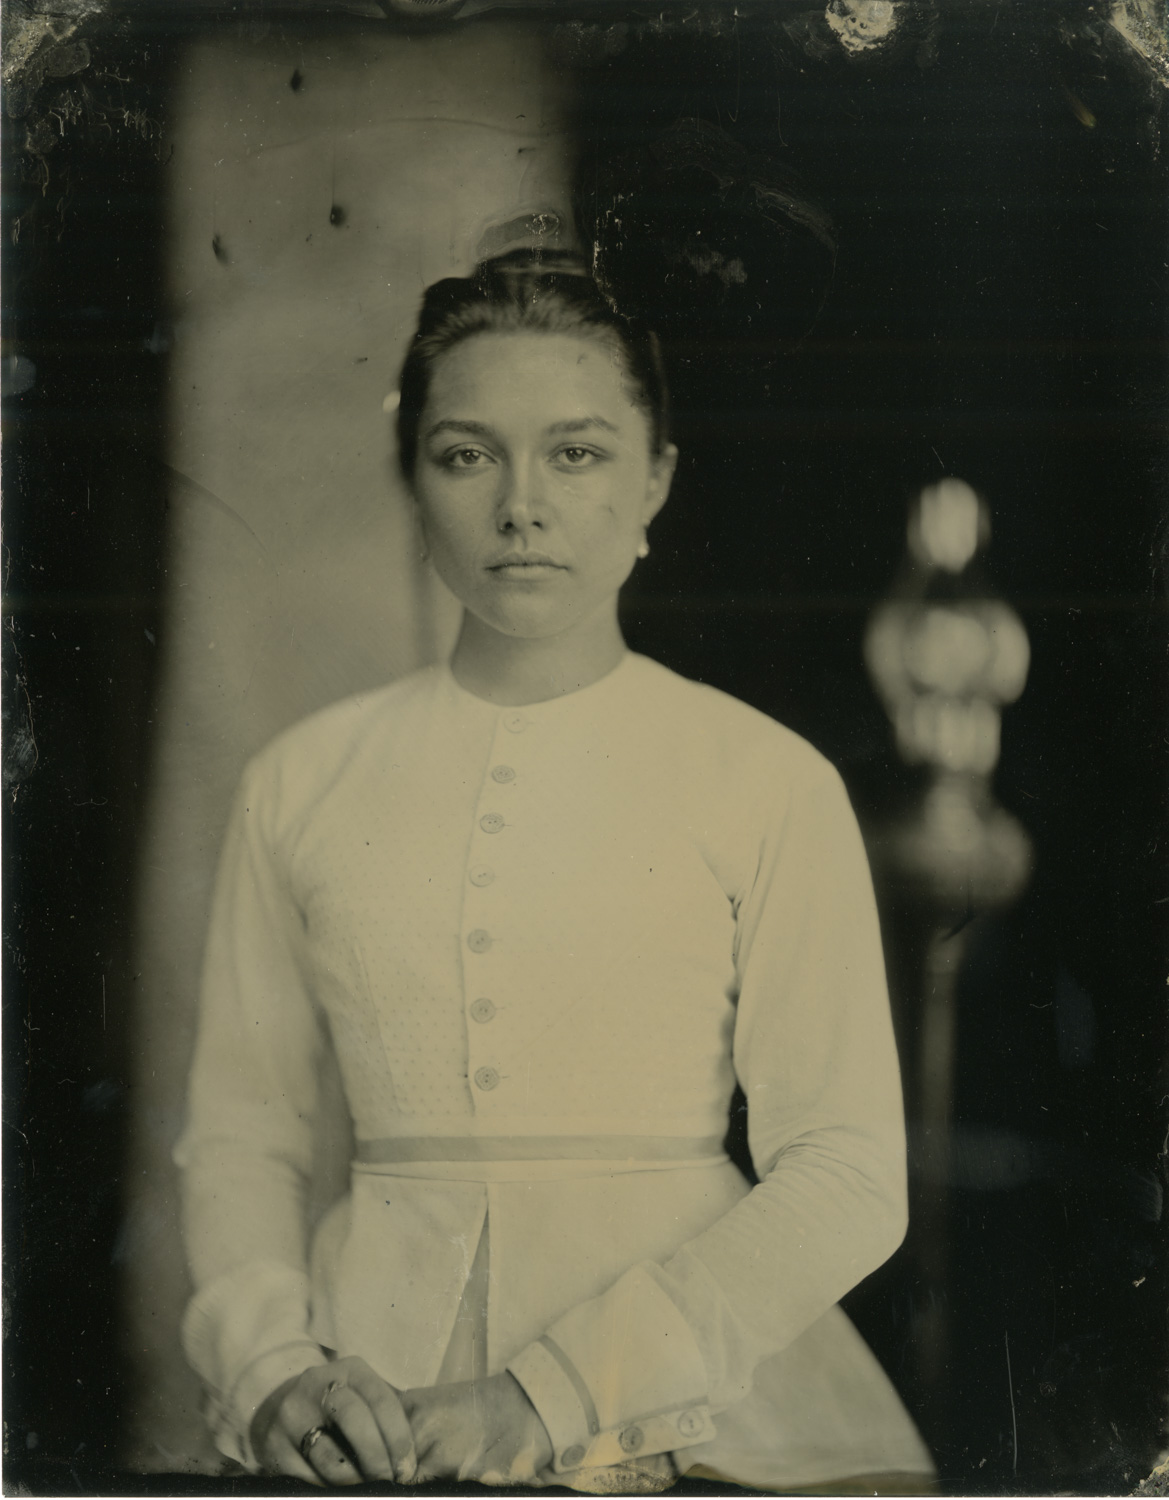 Florence Pugh wet plate - Wilson Webb, Colombia Pictures - Little Women (2019) v3